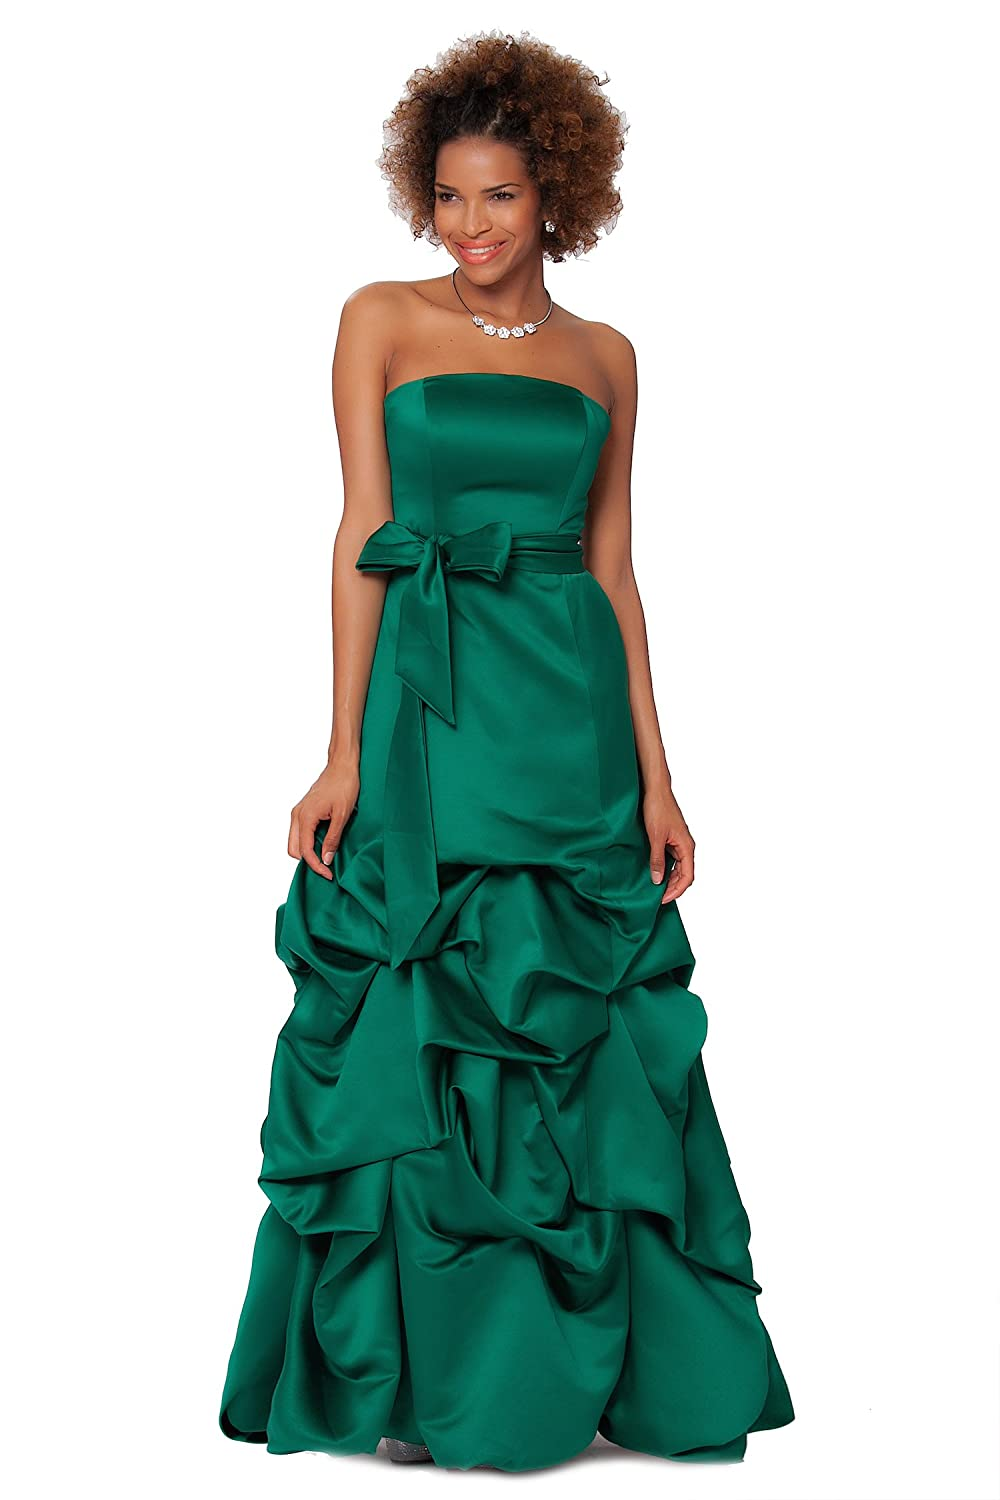 SEXYHER Gorgeous Full Length Strapless Bridesmaids Formal Evening Dress - EDJ1583